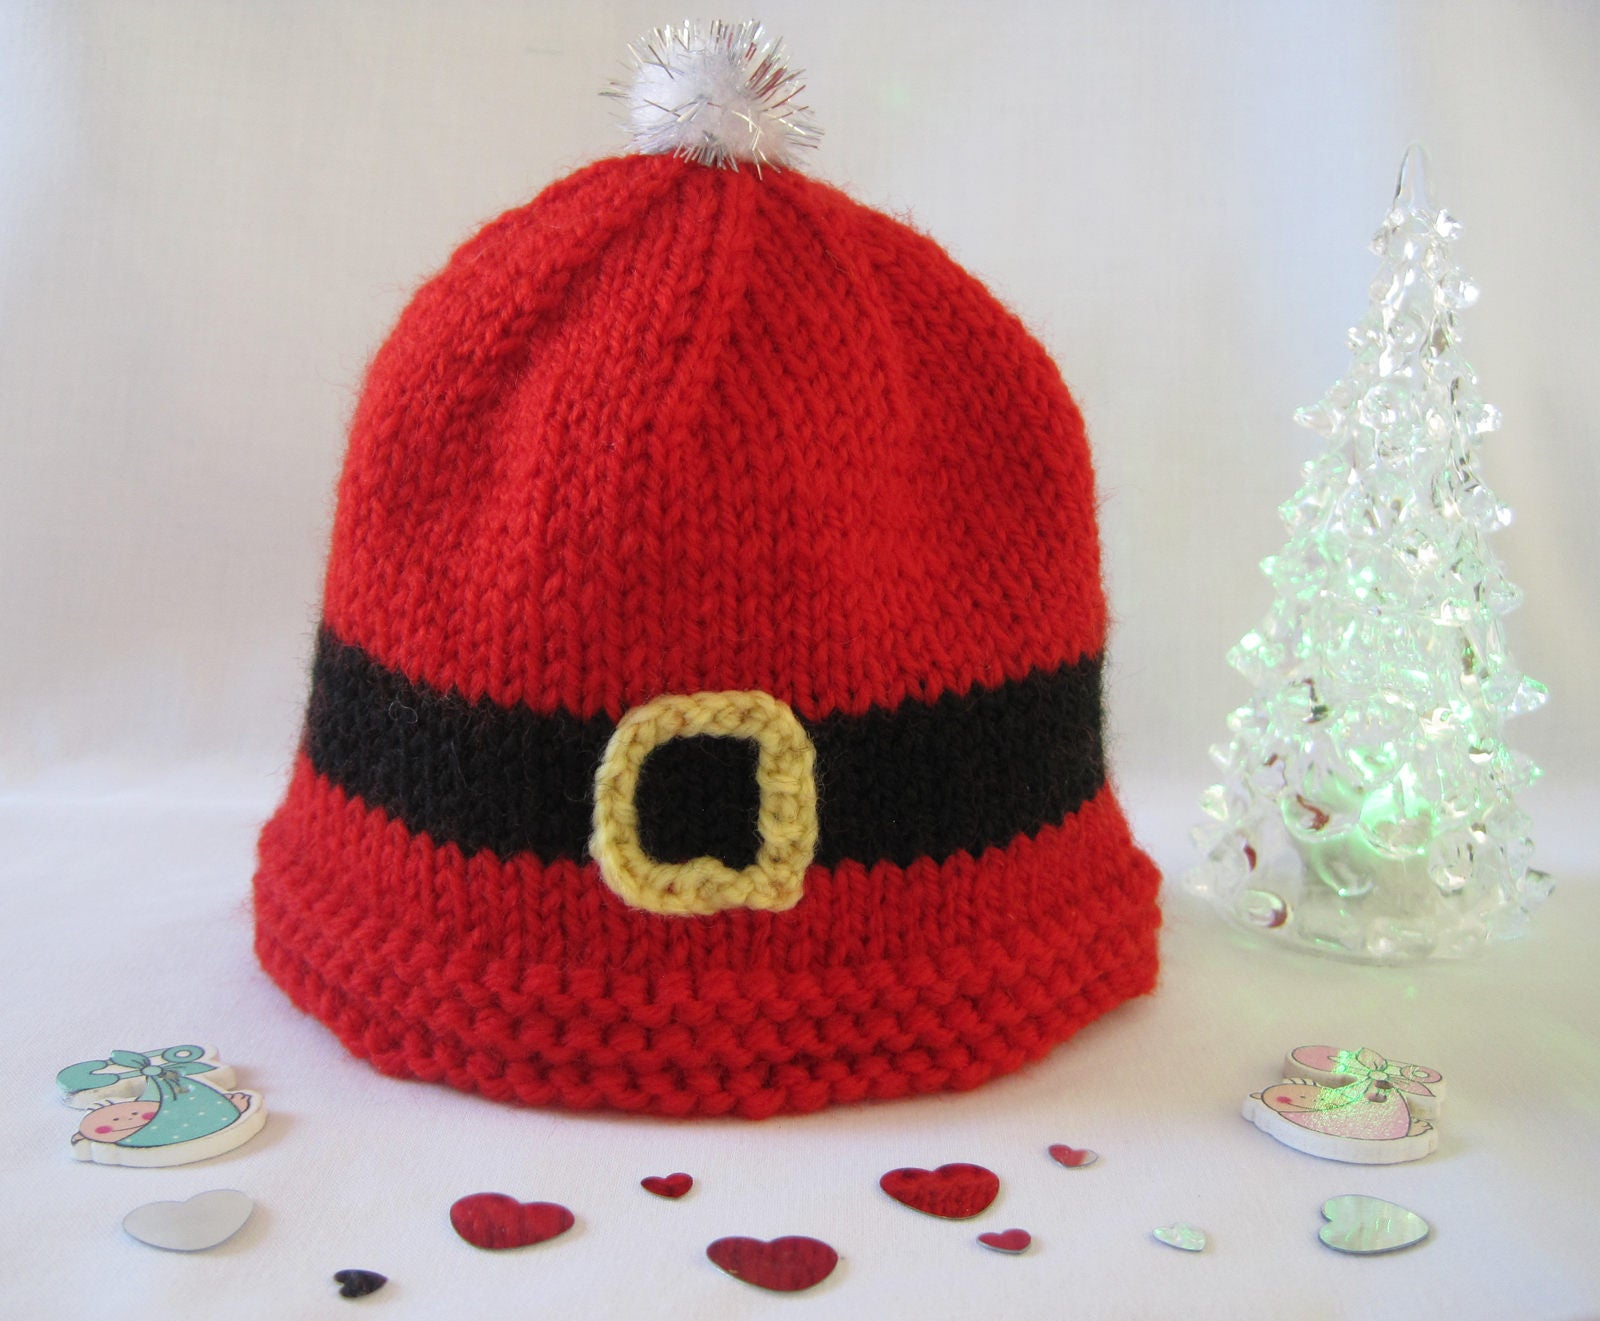 Baby Beanie Hat Knitting Pattern Xmas Ba Beanie Hat Knitting Pattern New Born Xmas Beanie Pattern Instant Download Ba Beanie Pattern Easy To Knit Ba Beanie Pattern